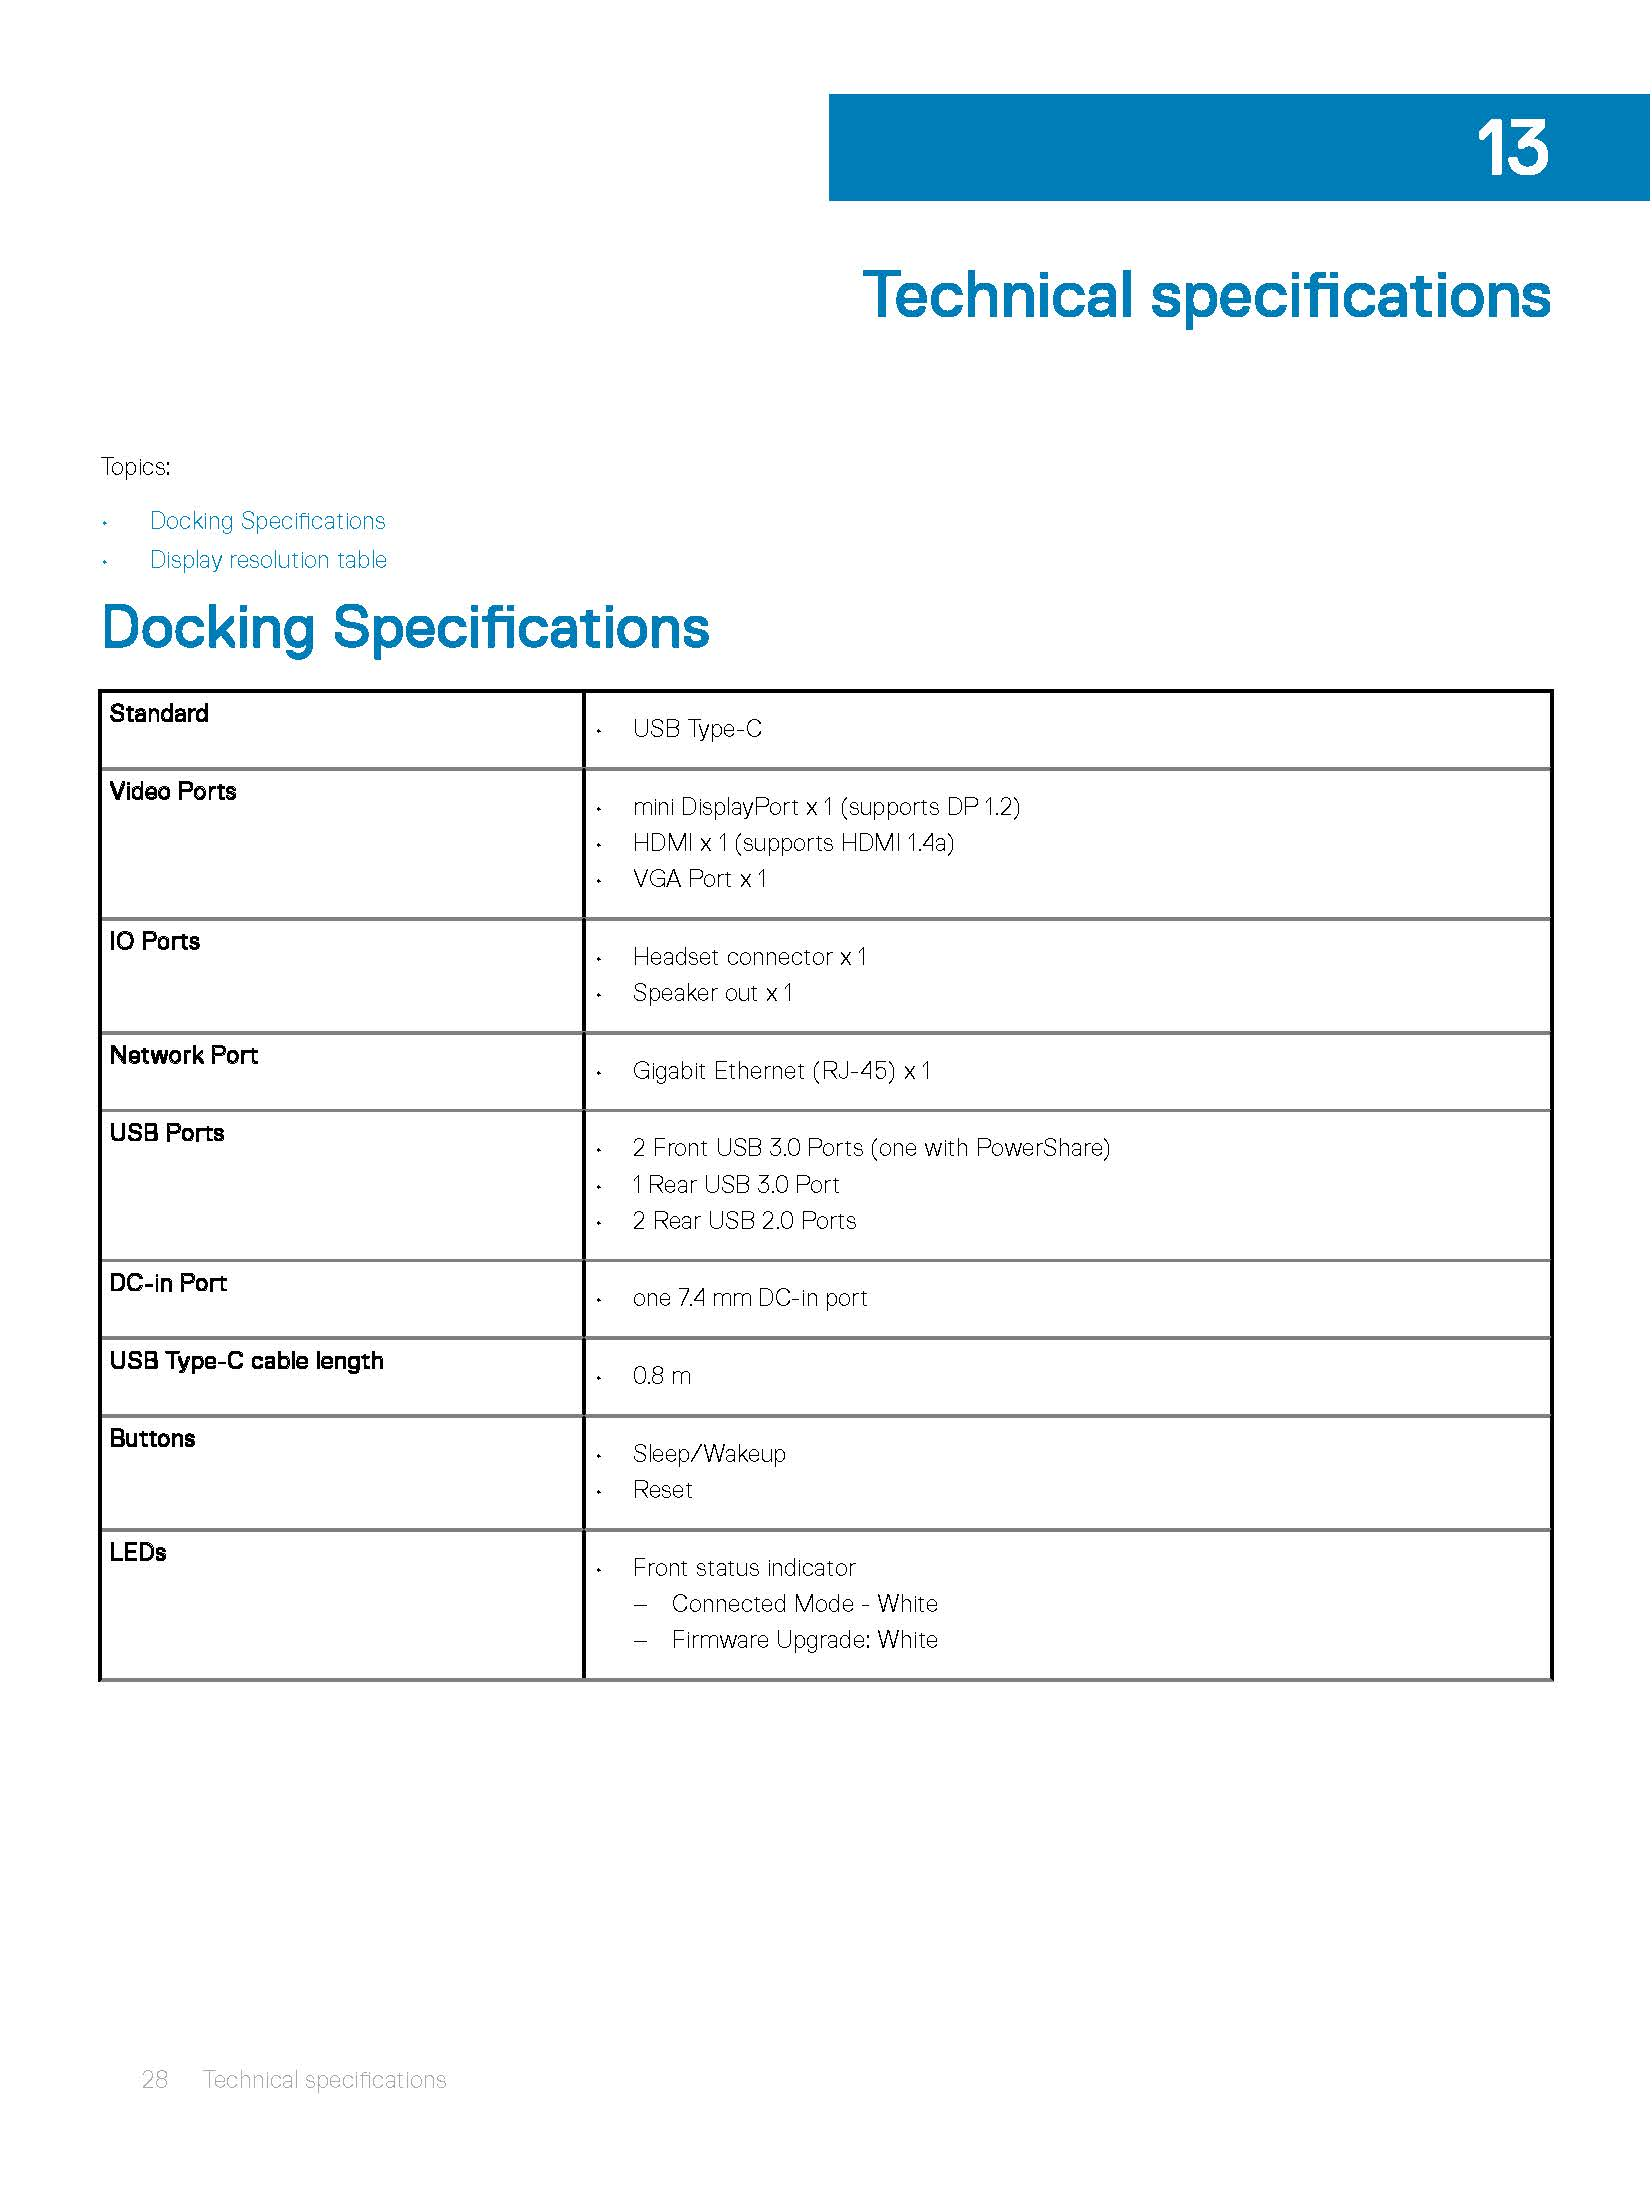 dell dock wd15 users guide en us Page 28